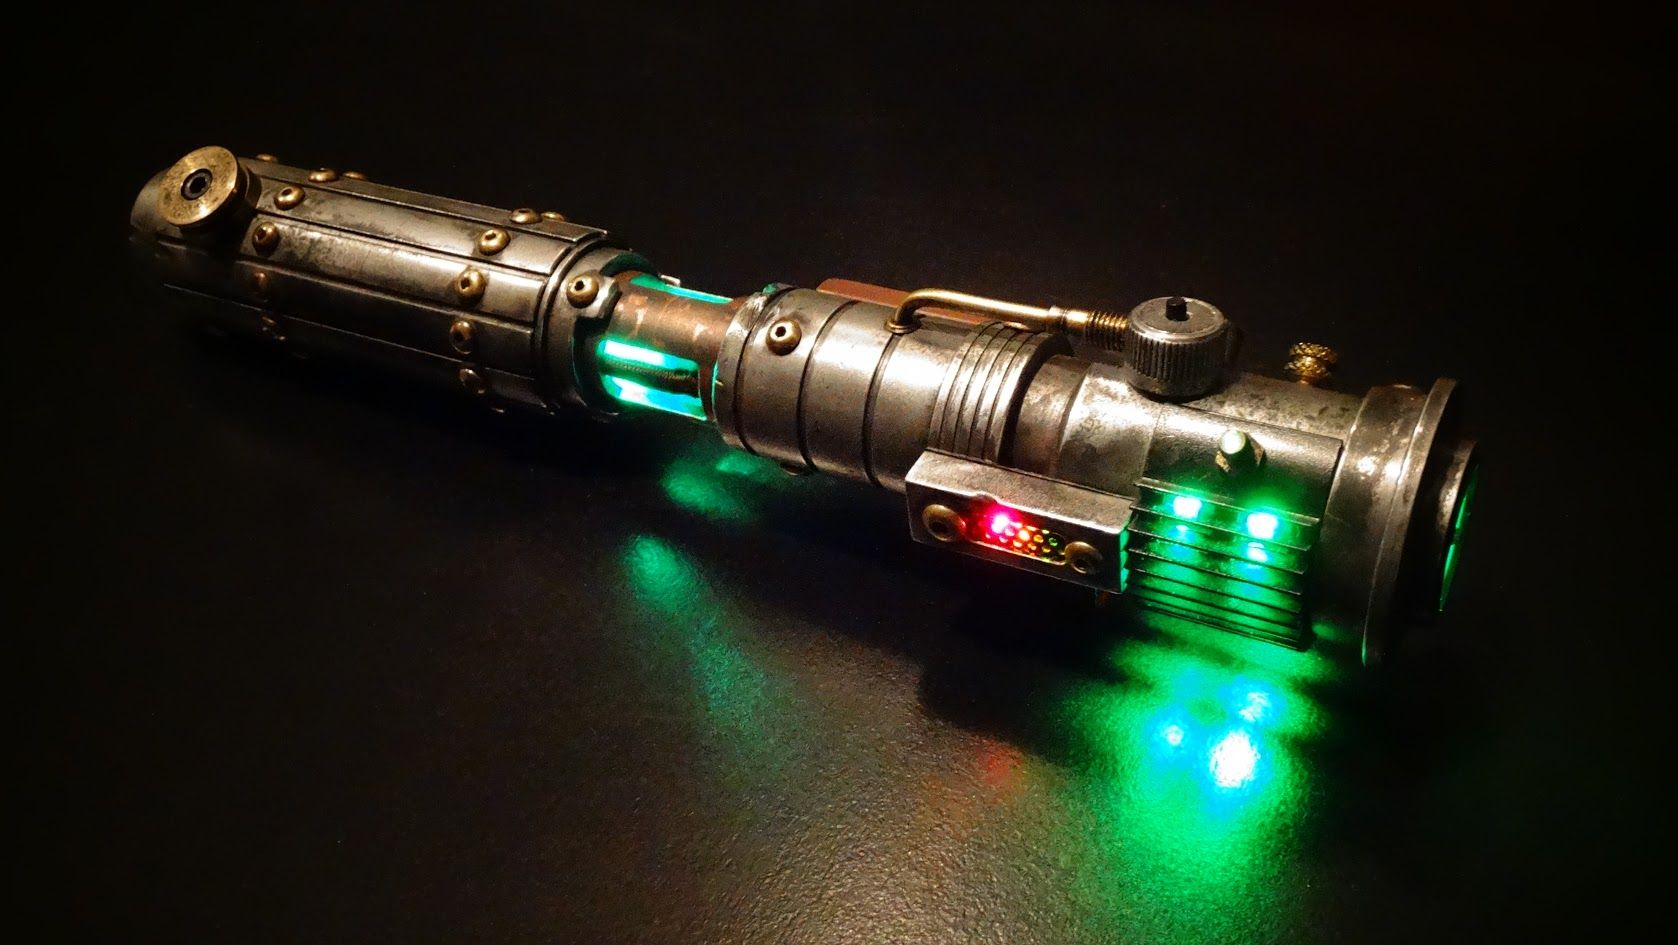 Jade Primo Lightsaber | Lightsabers & Stands by Solos Hold